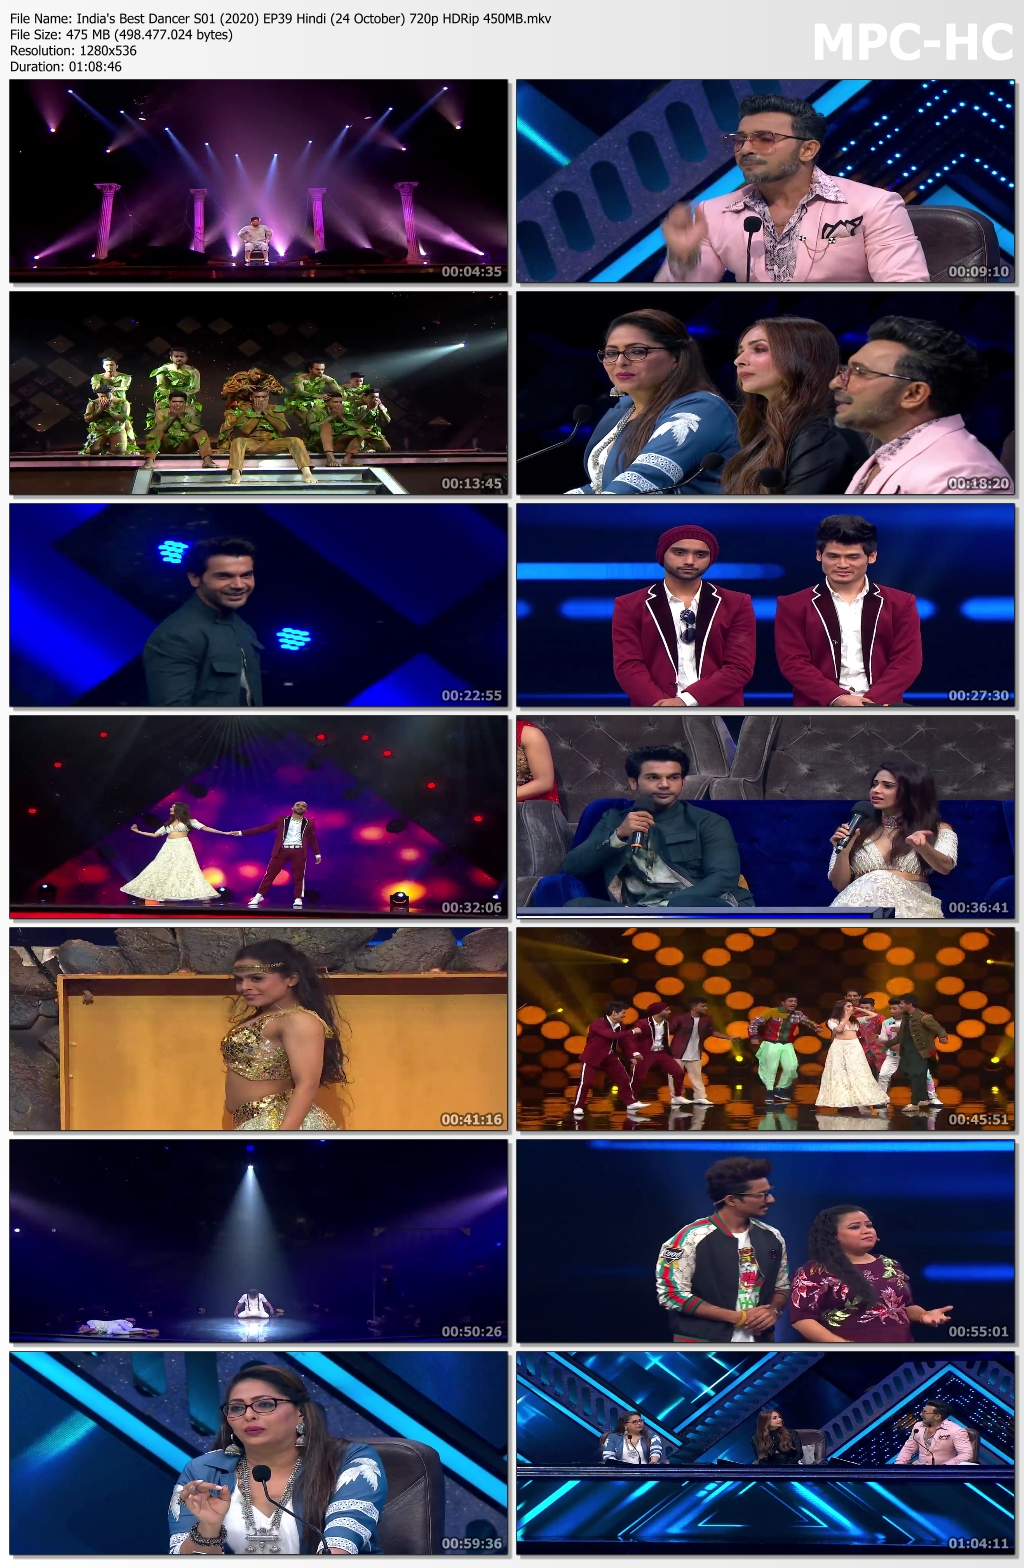 India-s-Best-Dancer-S01-2020-EP39-Hindi-24-October-720p-HDRip-450-MB-mkv-thumbs